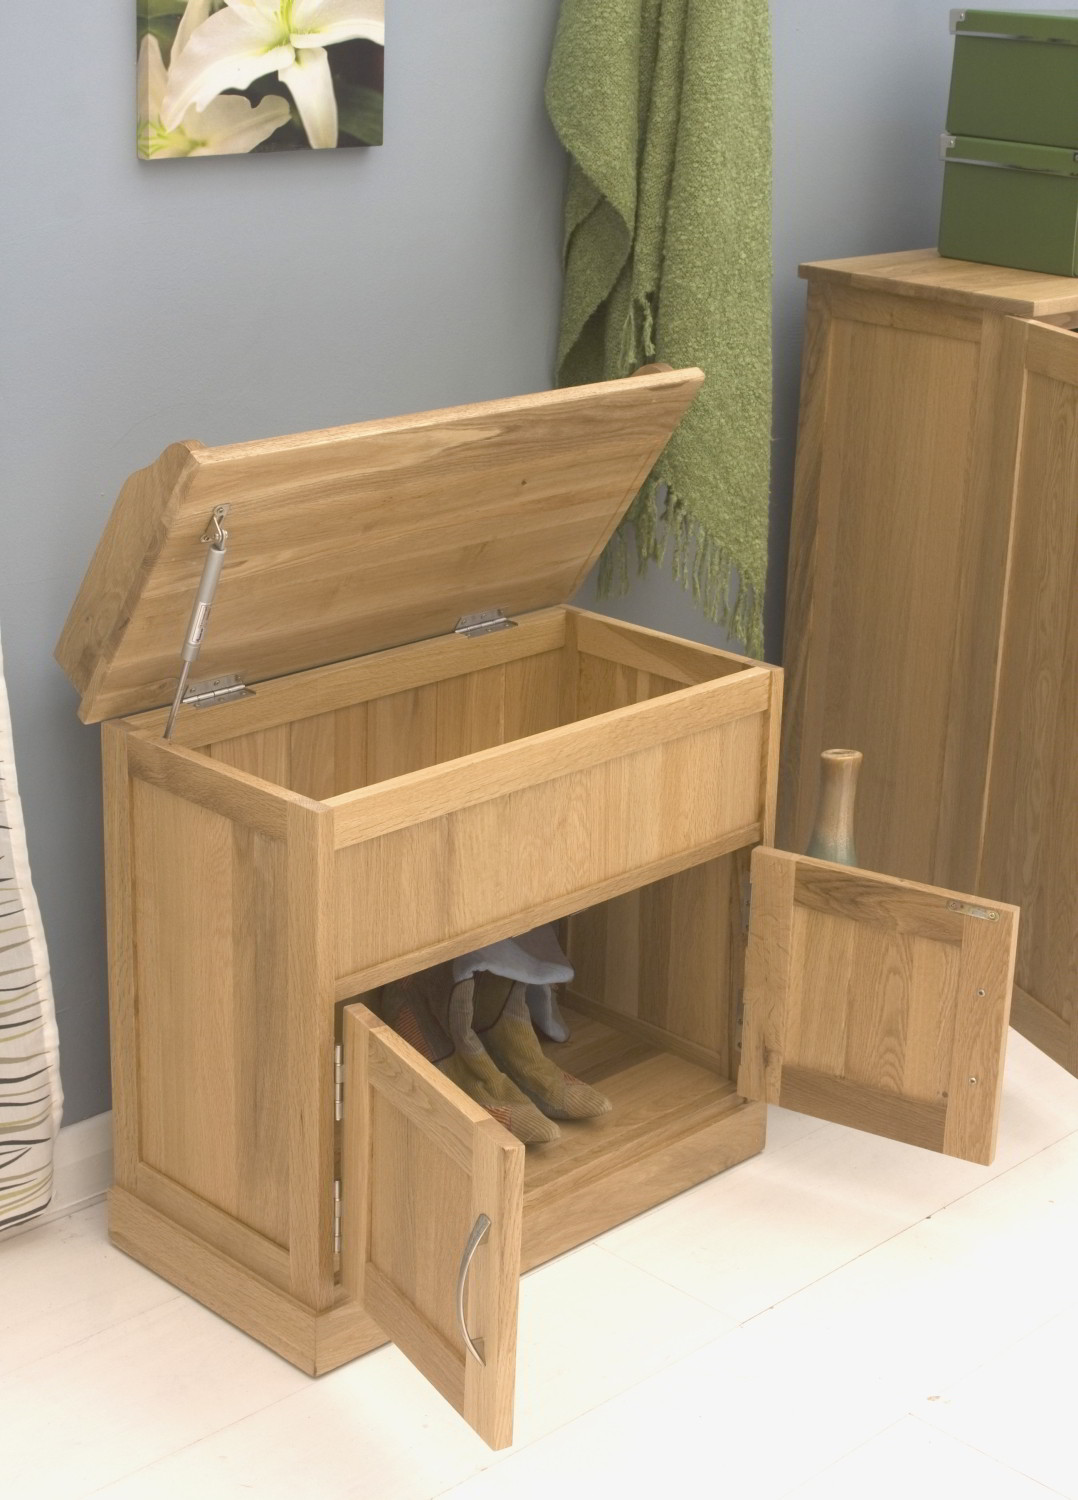 Conran Solid Oak Furniture Hallway Shoe Storage Bench Cabinet Ebay